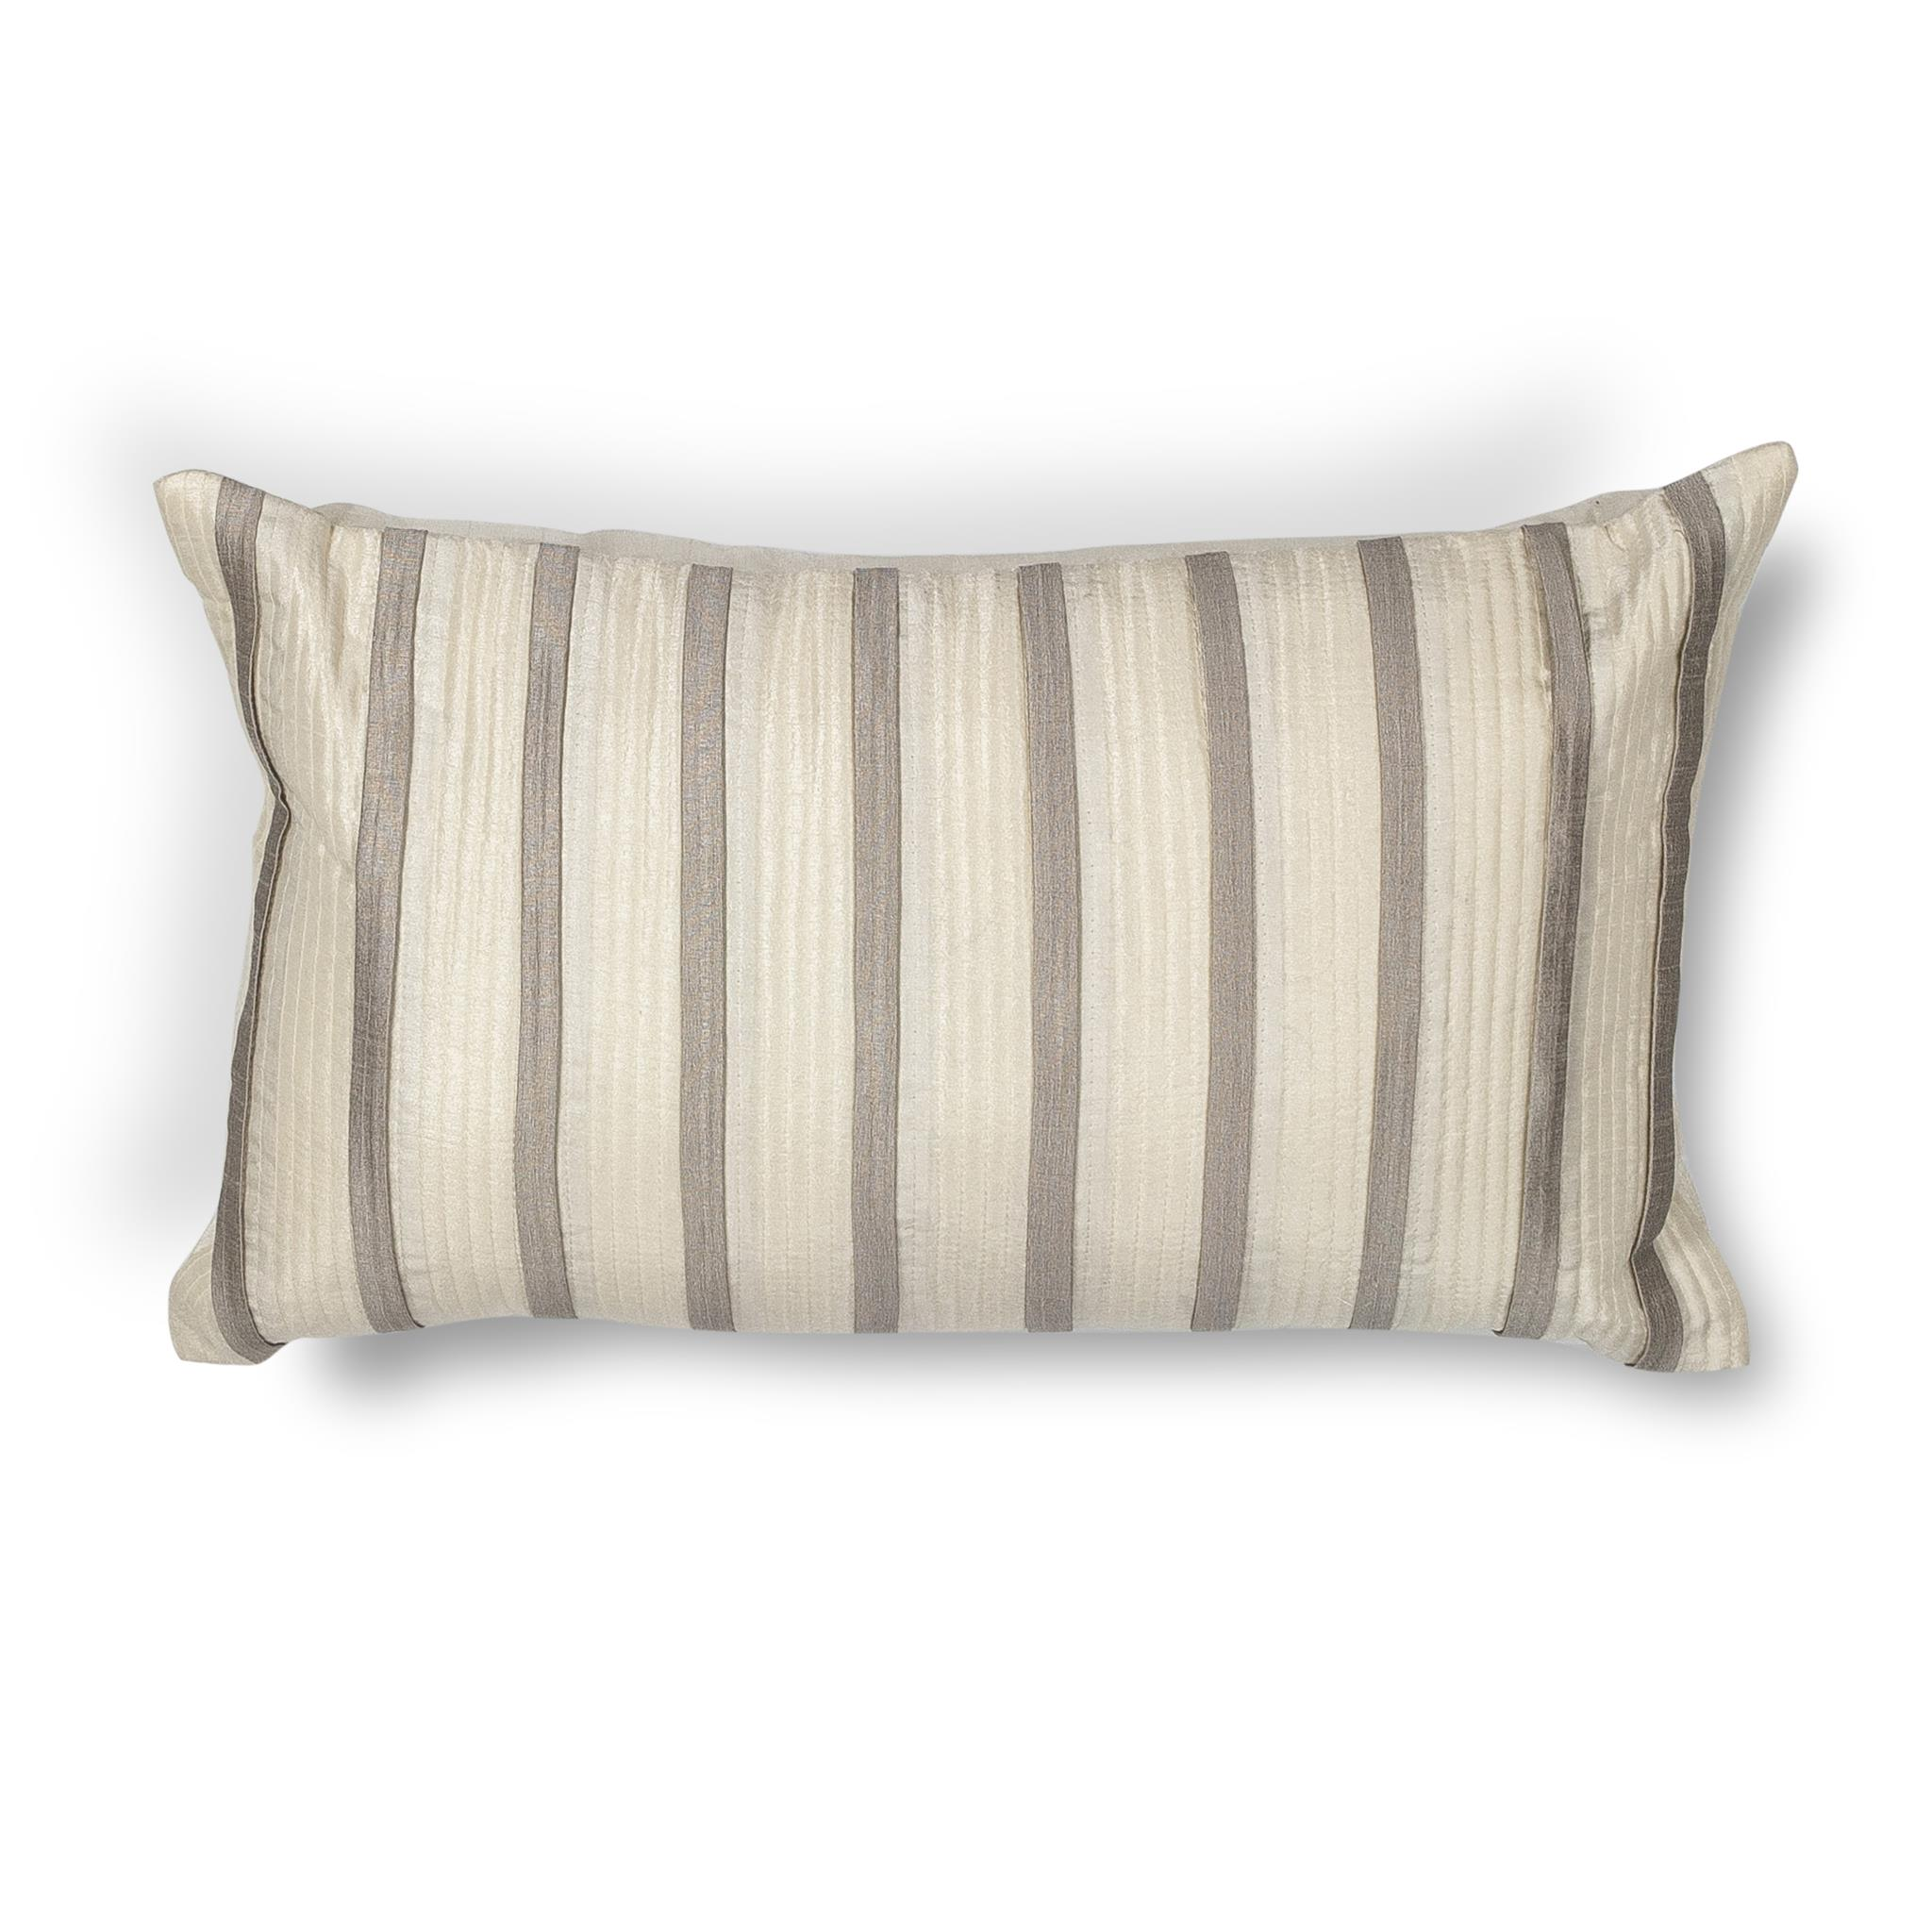 L223 Donny Osmond Home Ivory-Grey Stripes Pillow